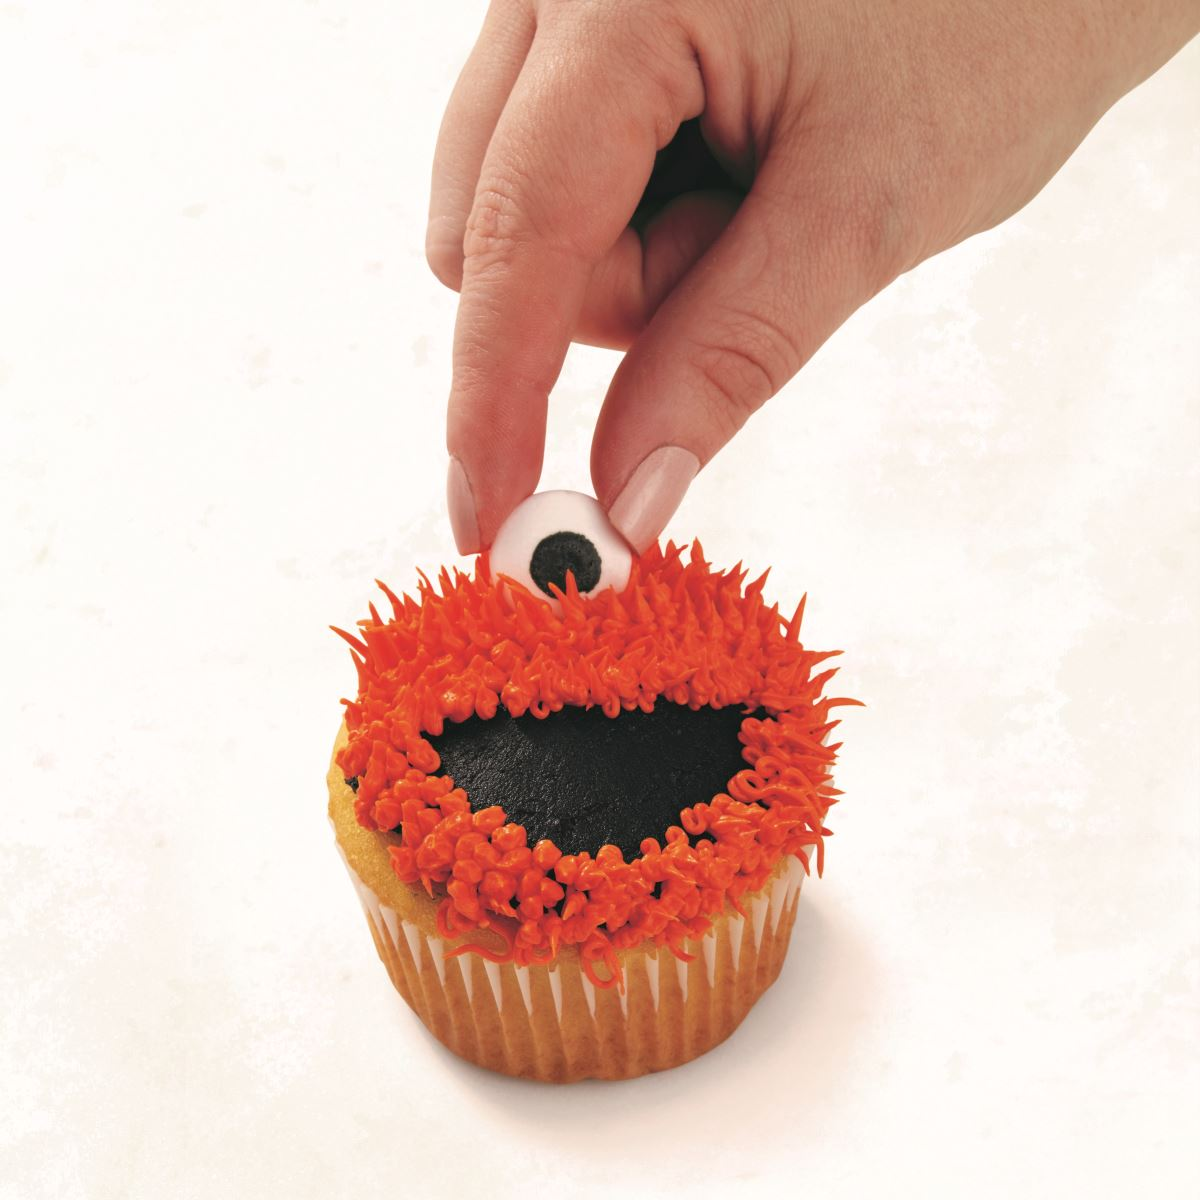 ORANGE ONE-EYED MONSTER CUPCAKE step 4